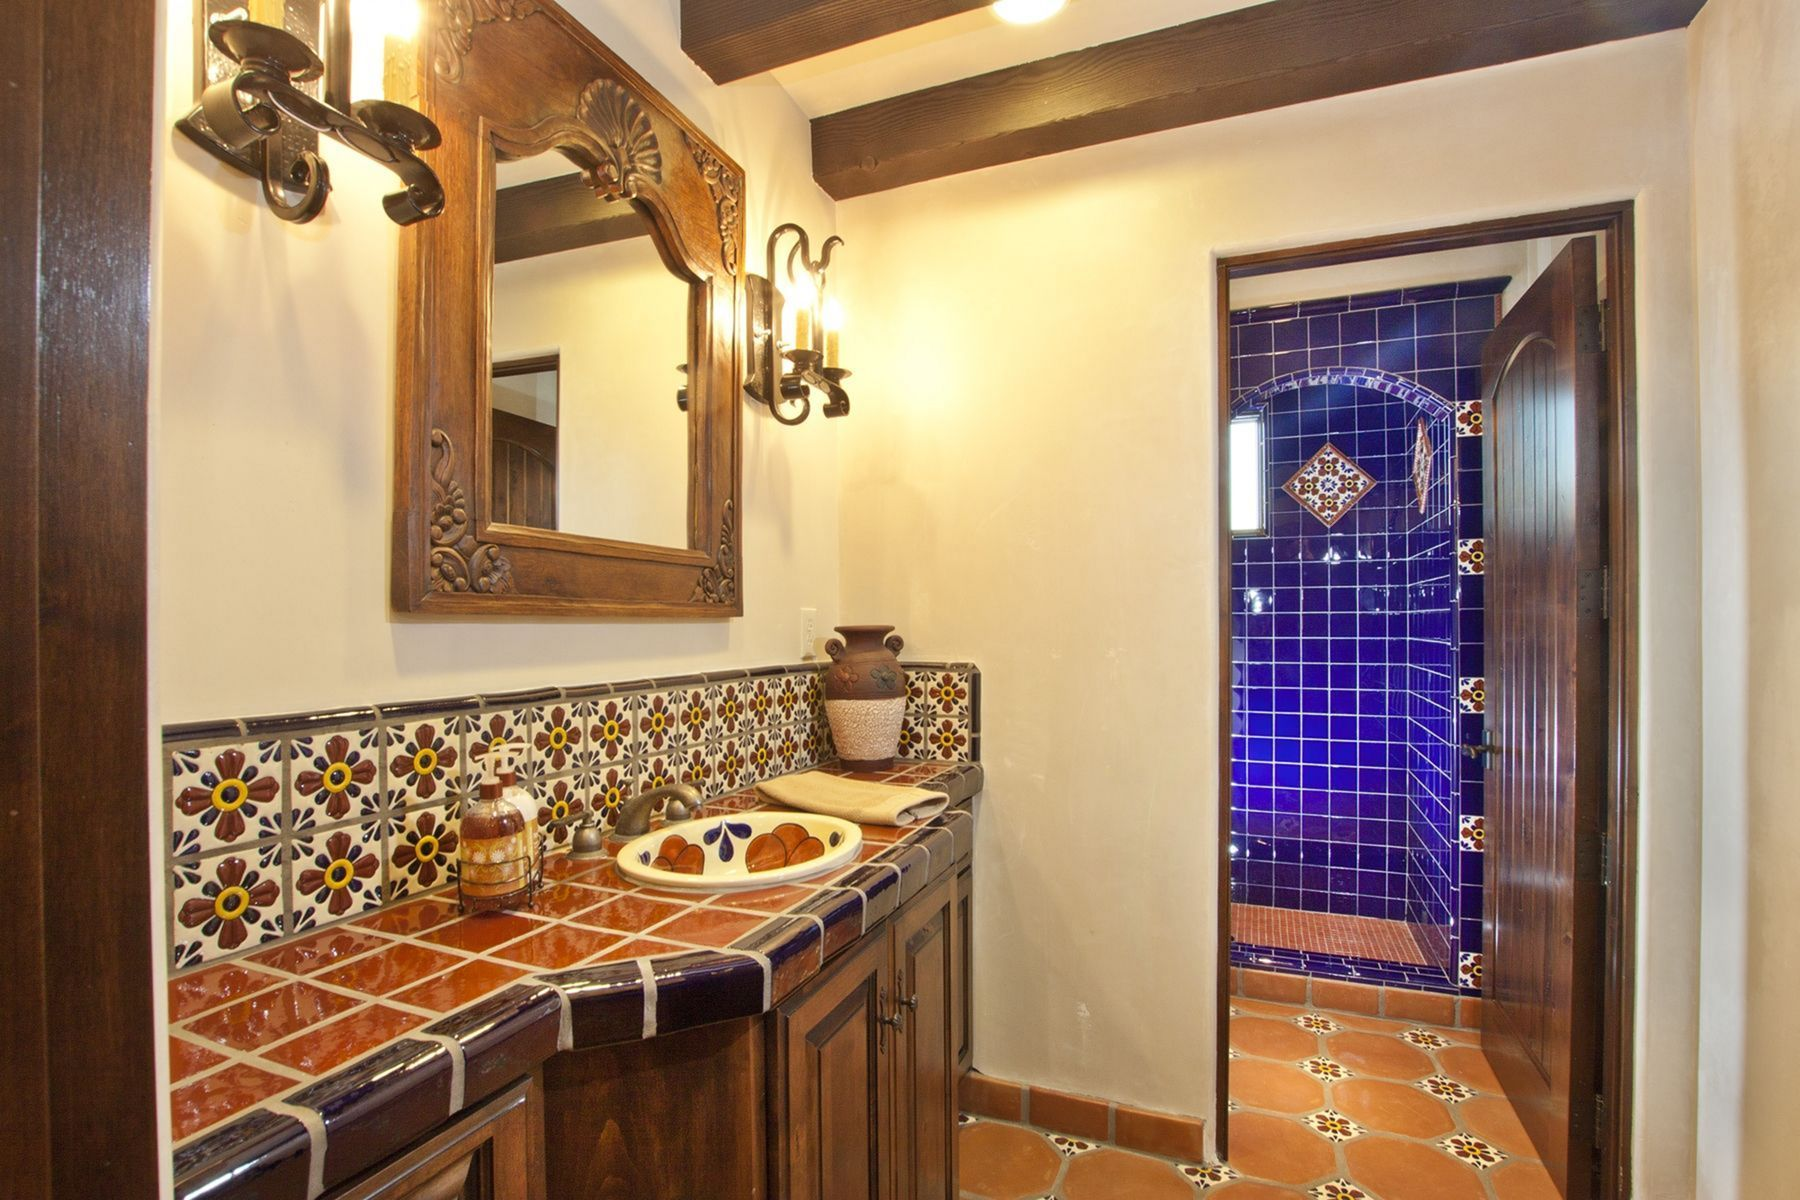 Badezimmer dekor strand thema  amazing country decorating ideas to make your bathroom more